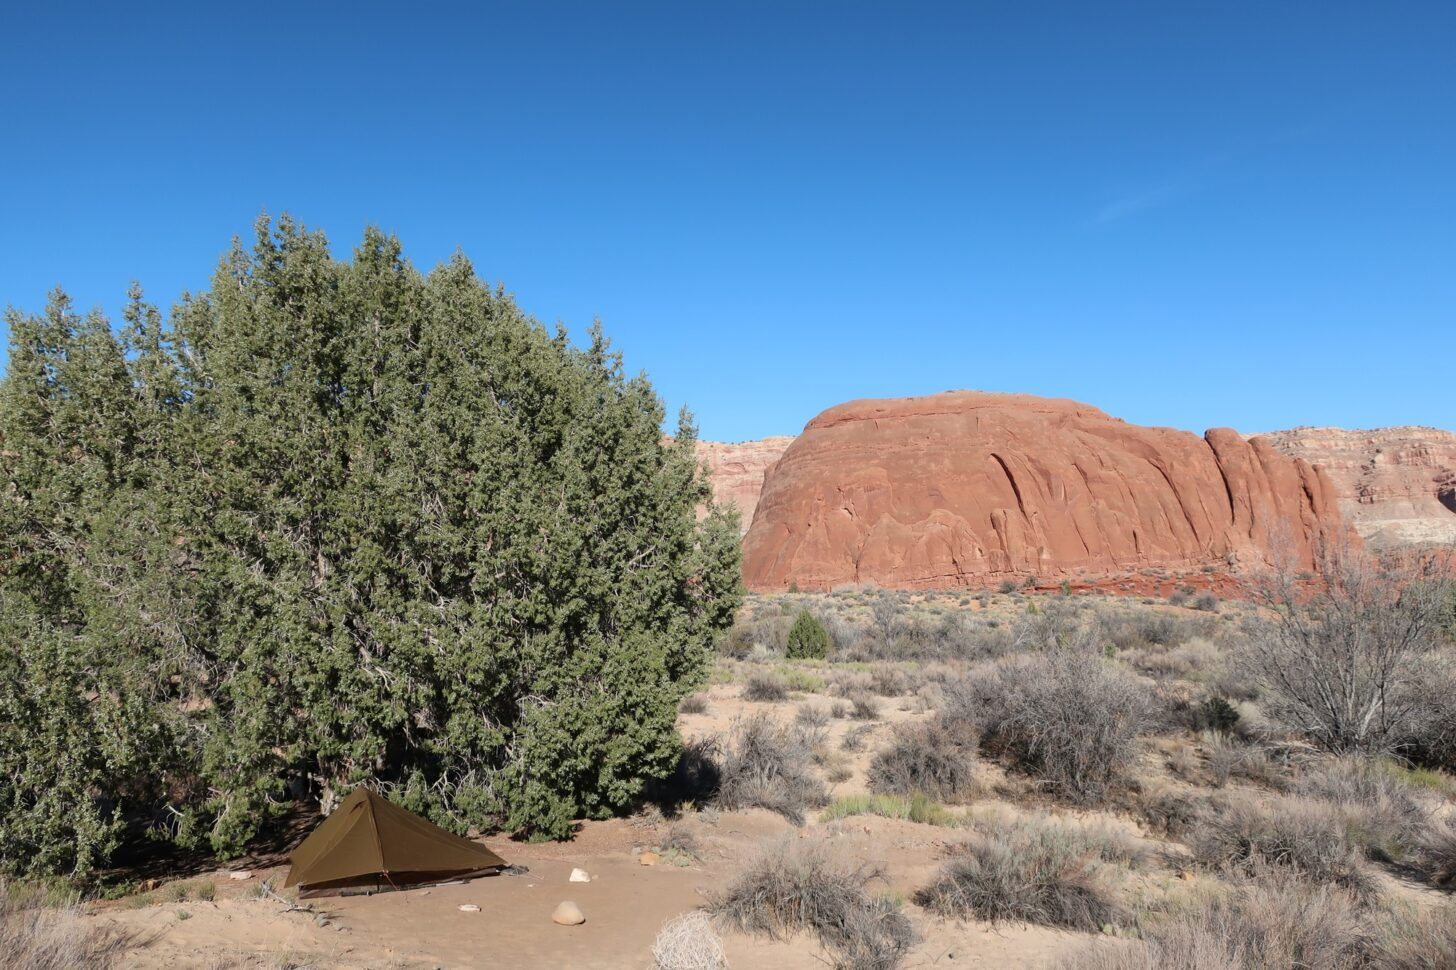 a flat campsite under a blue sky with red sandstone rocks in the background